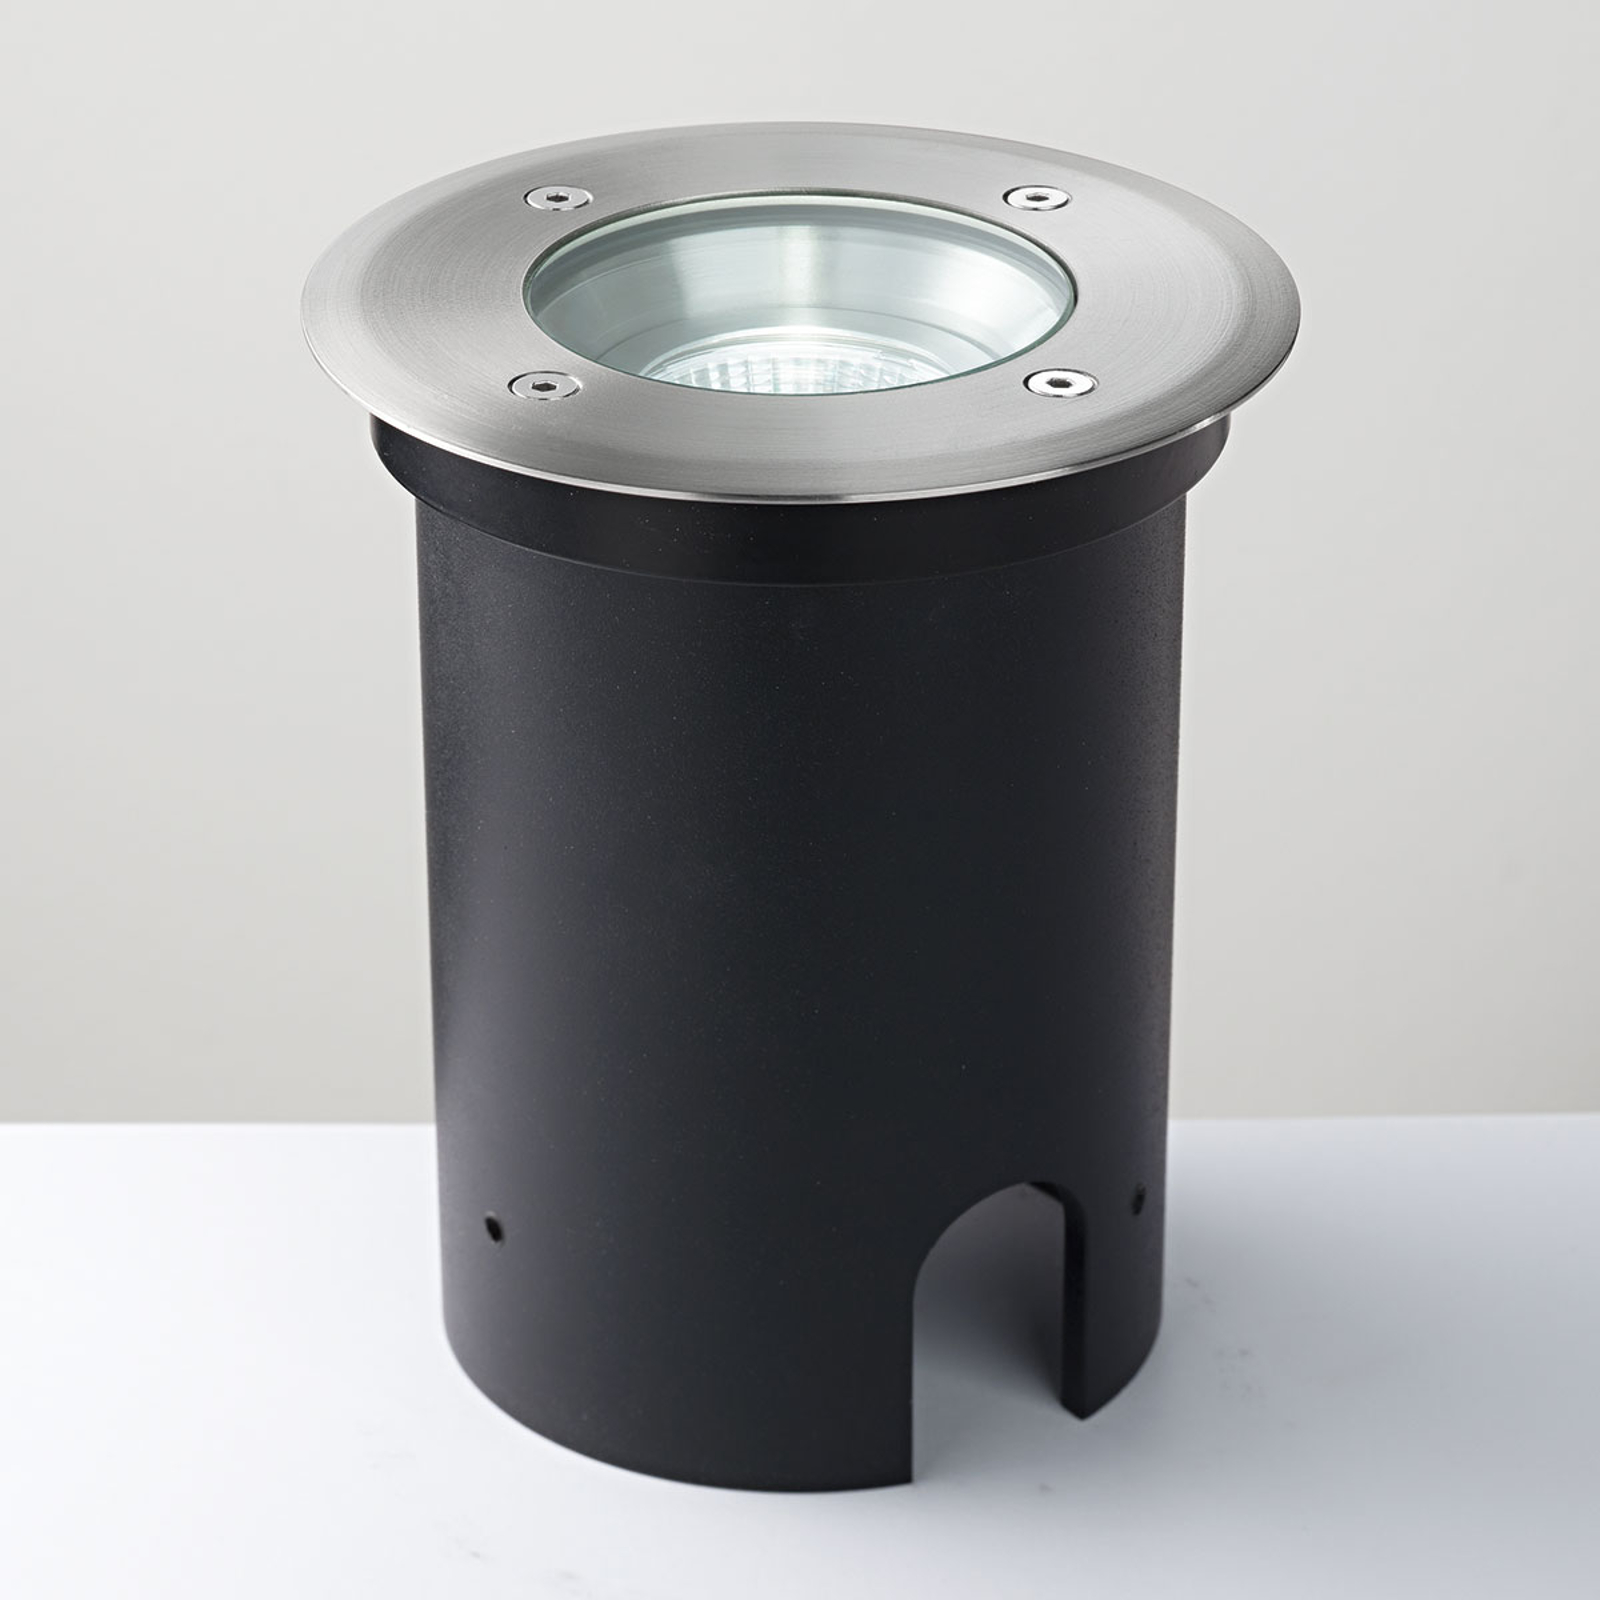 LED-bakkespot Scotty 3, IP67